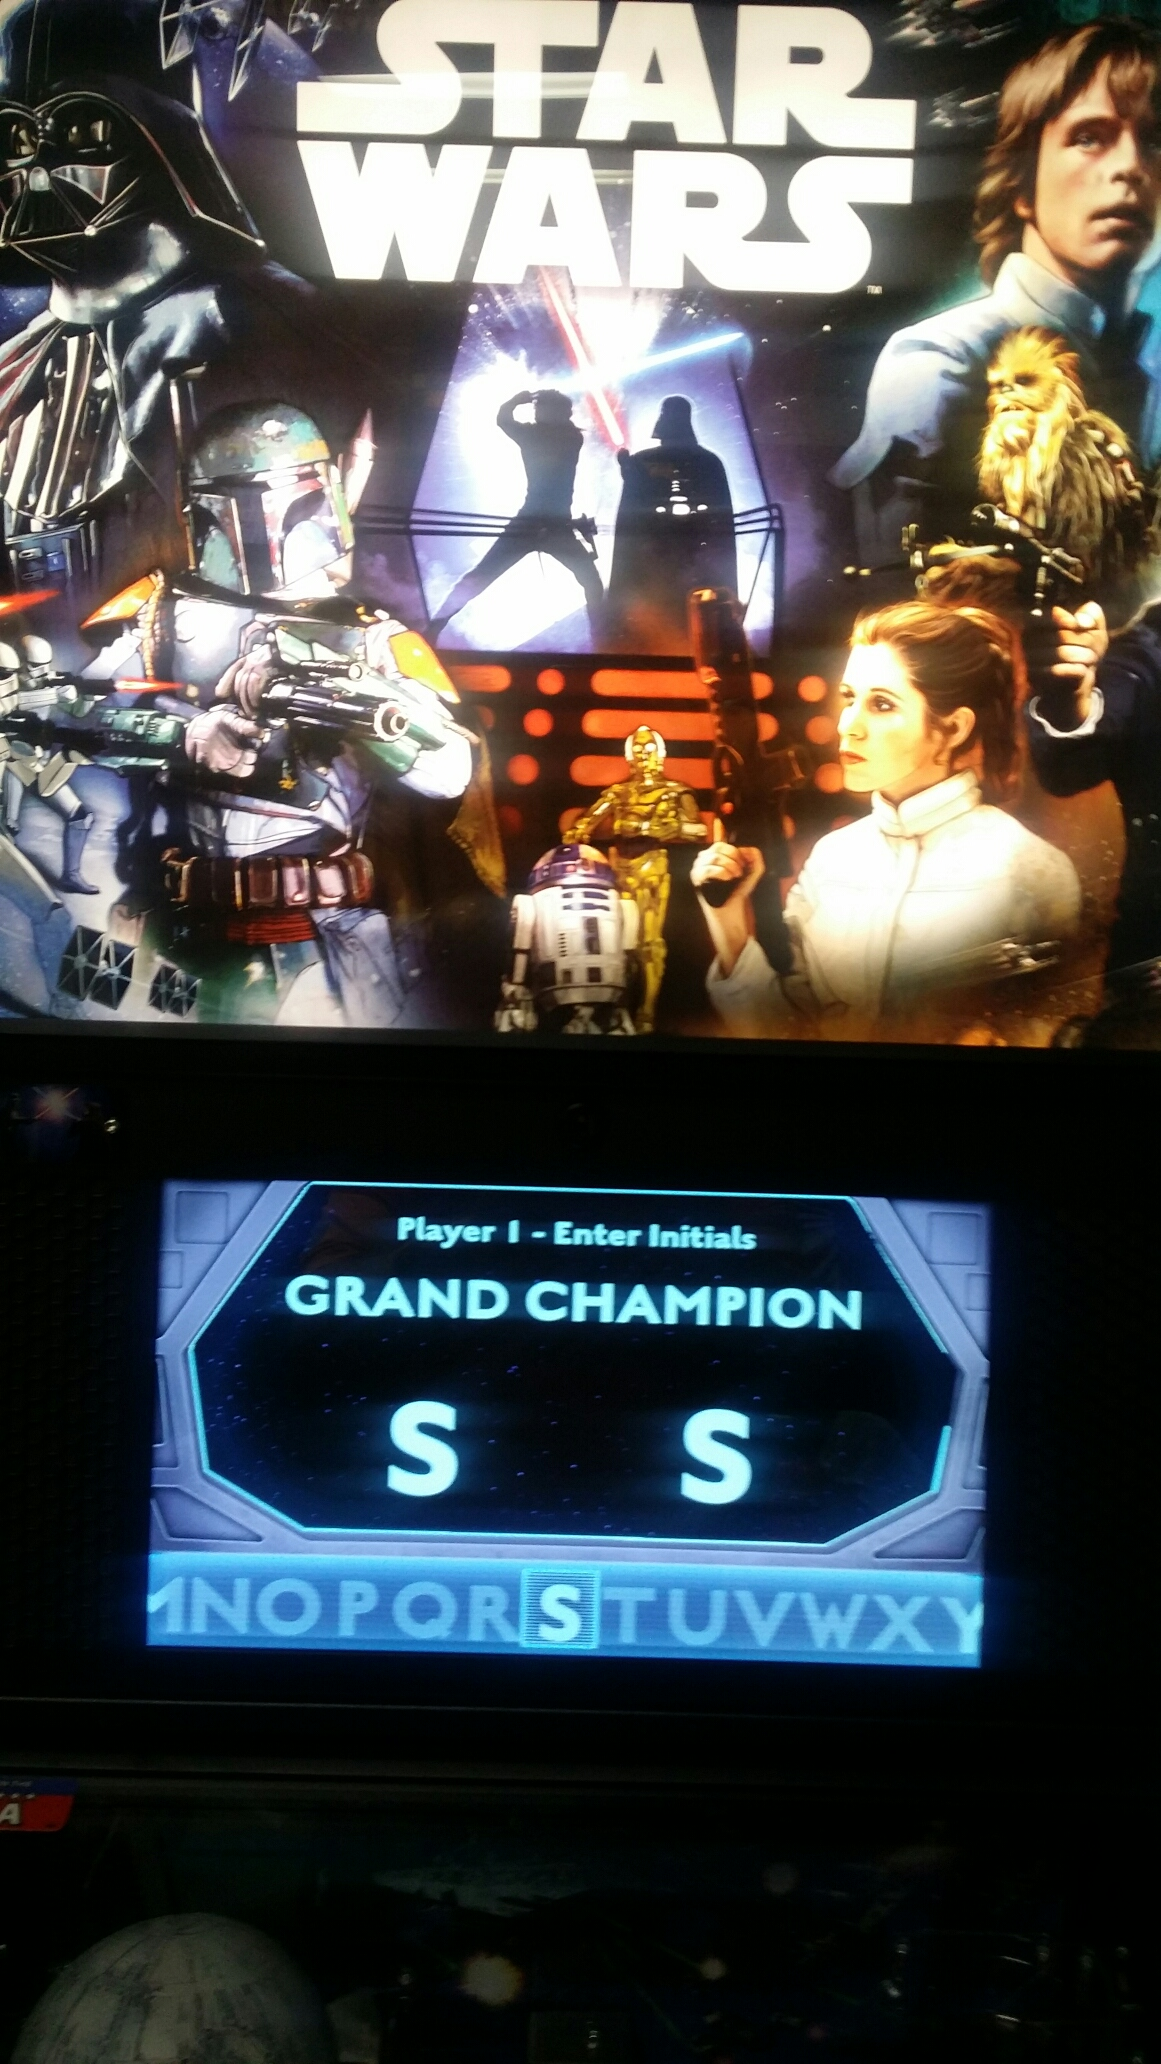 Star Wars [2017 Stern Pinball] [Pro] 4,312,018,960 points